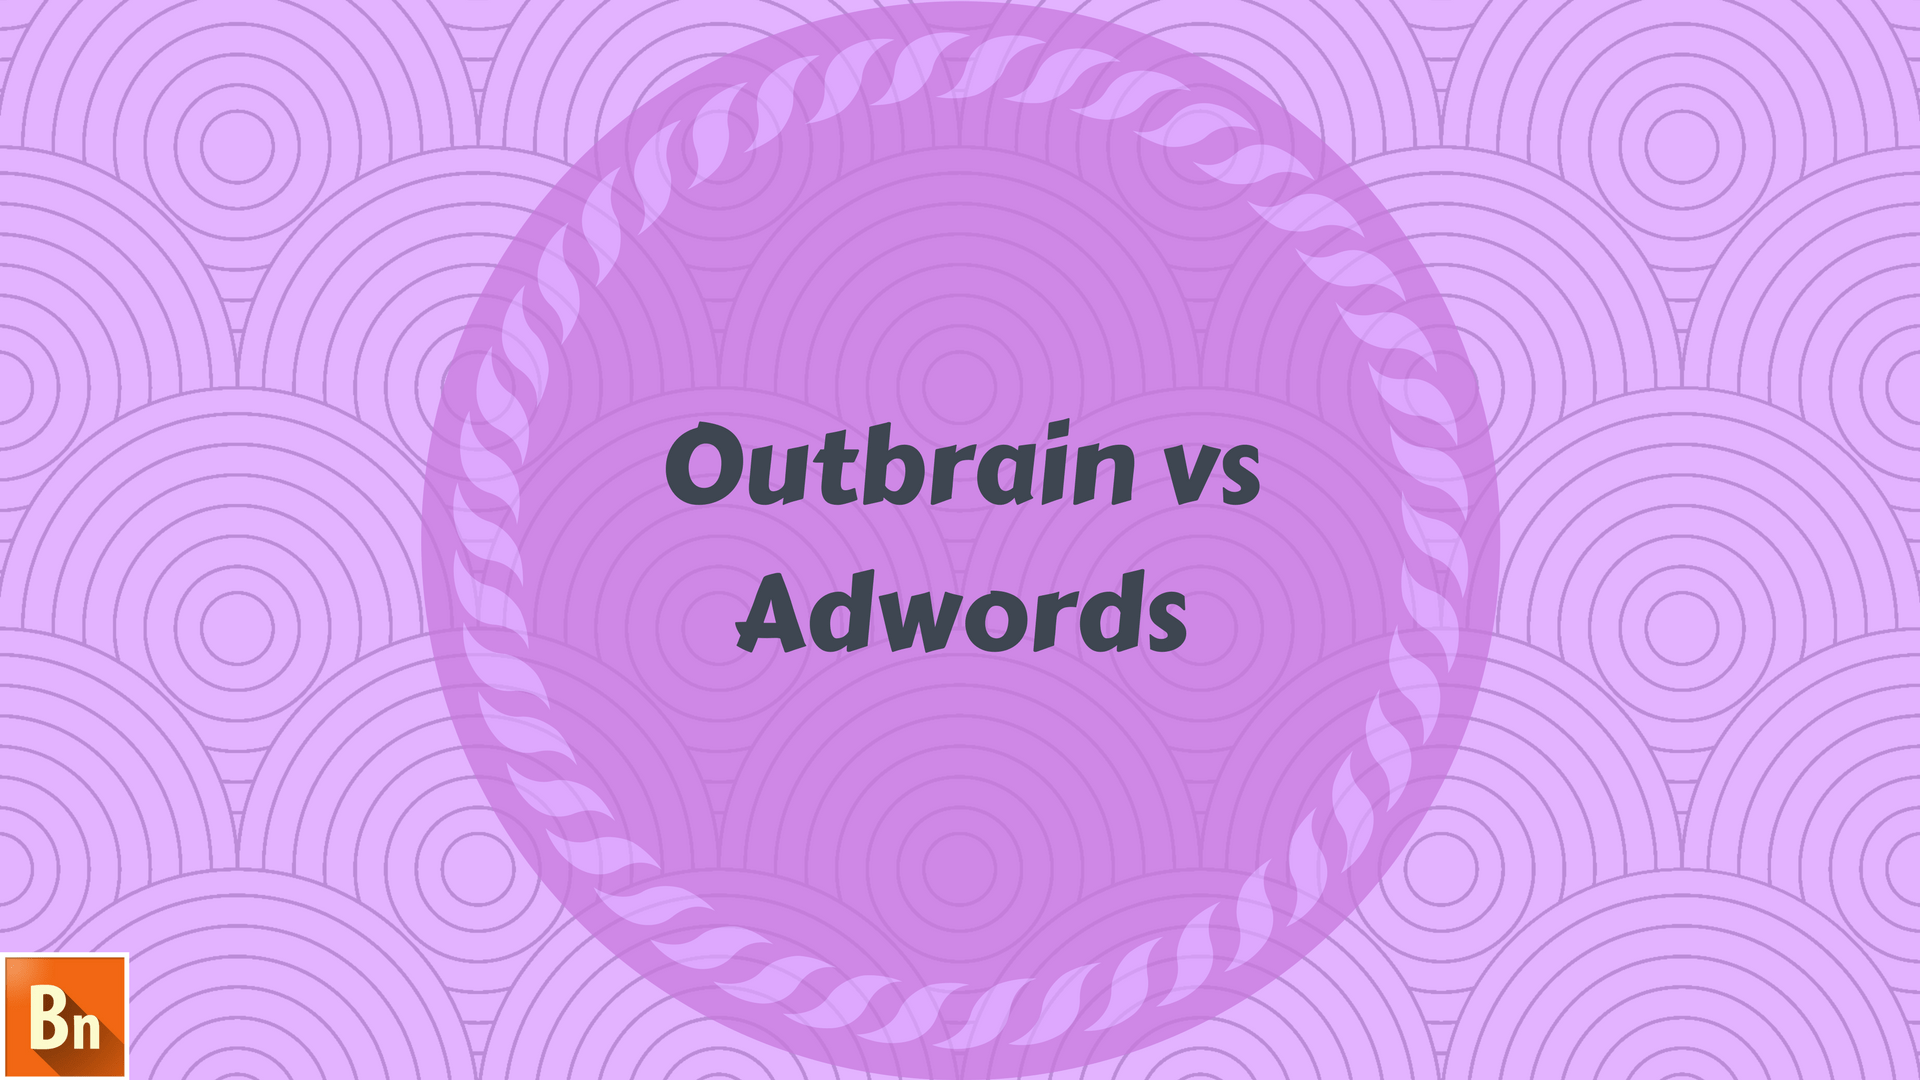 Outbrain vs Adwords- Review 2019